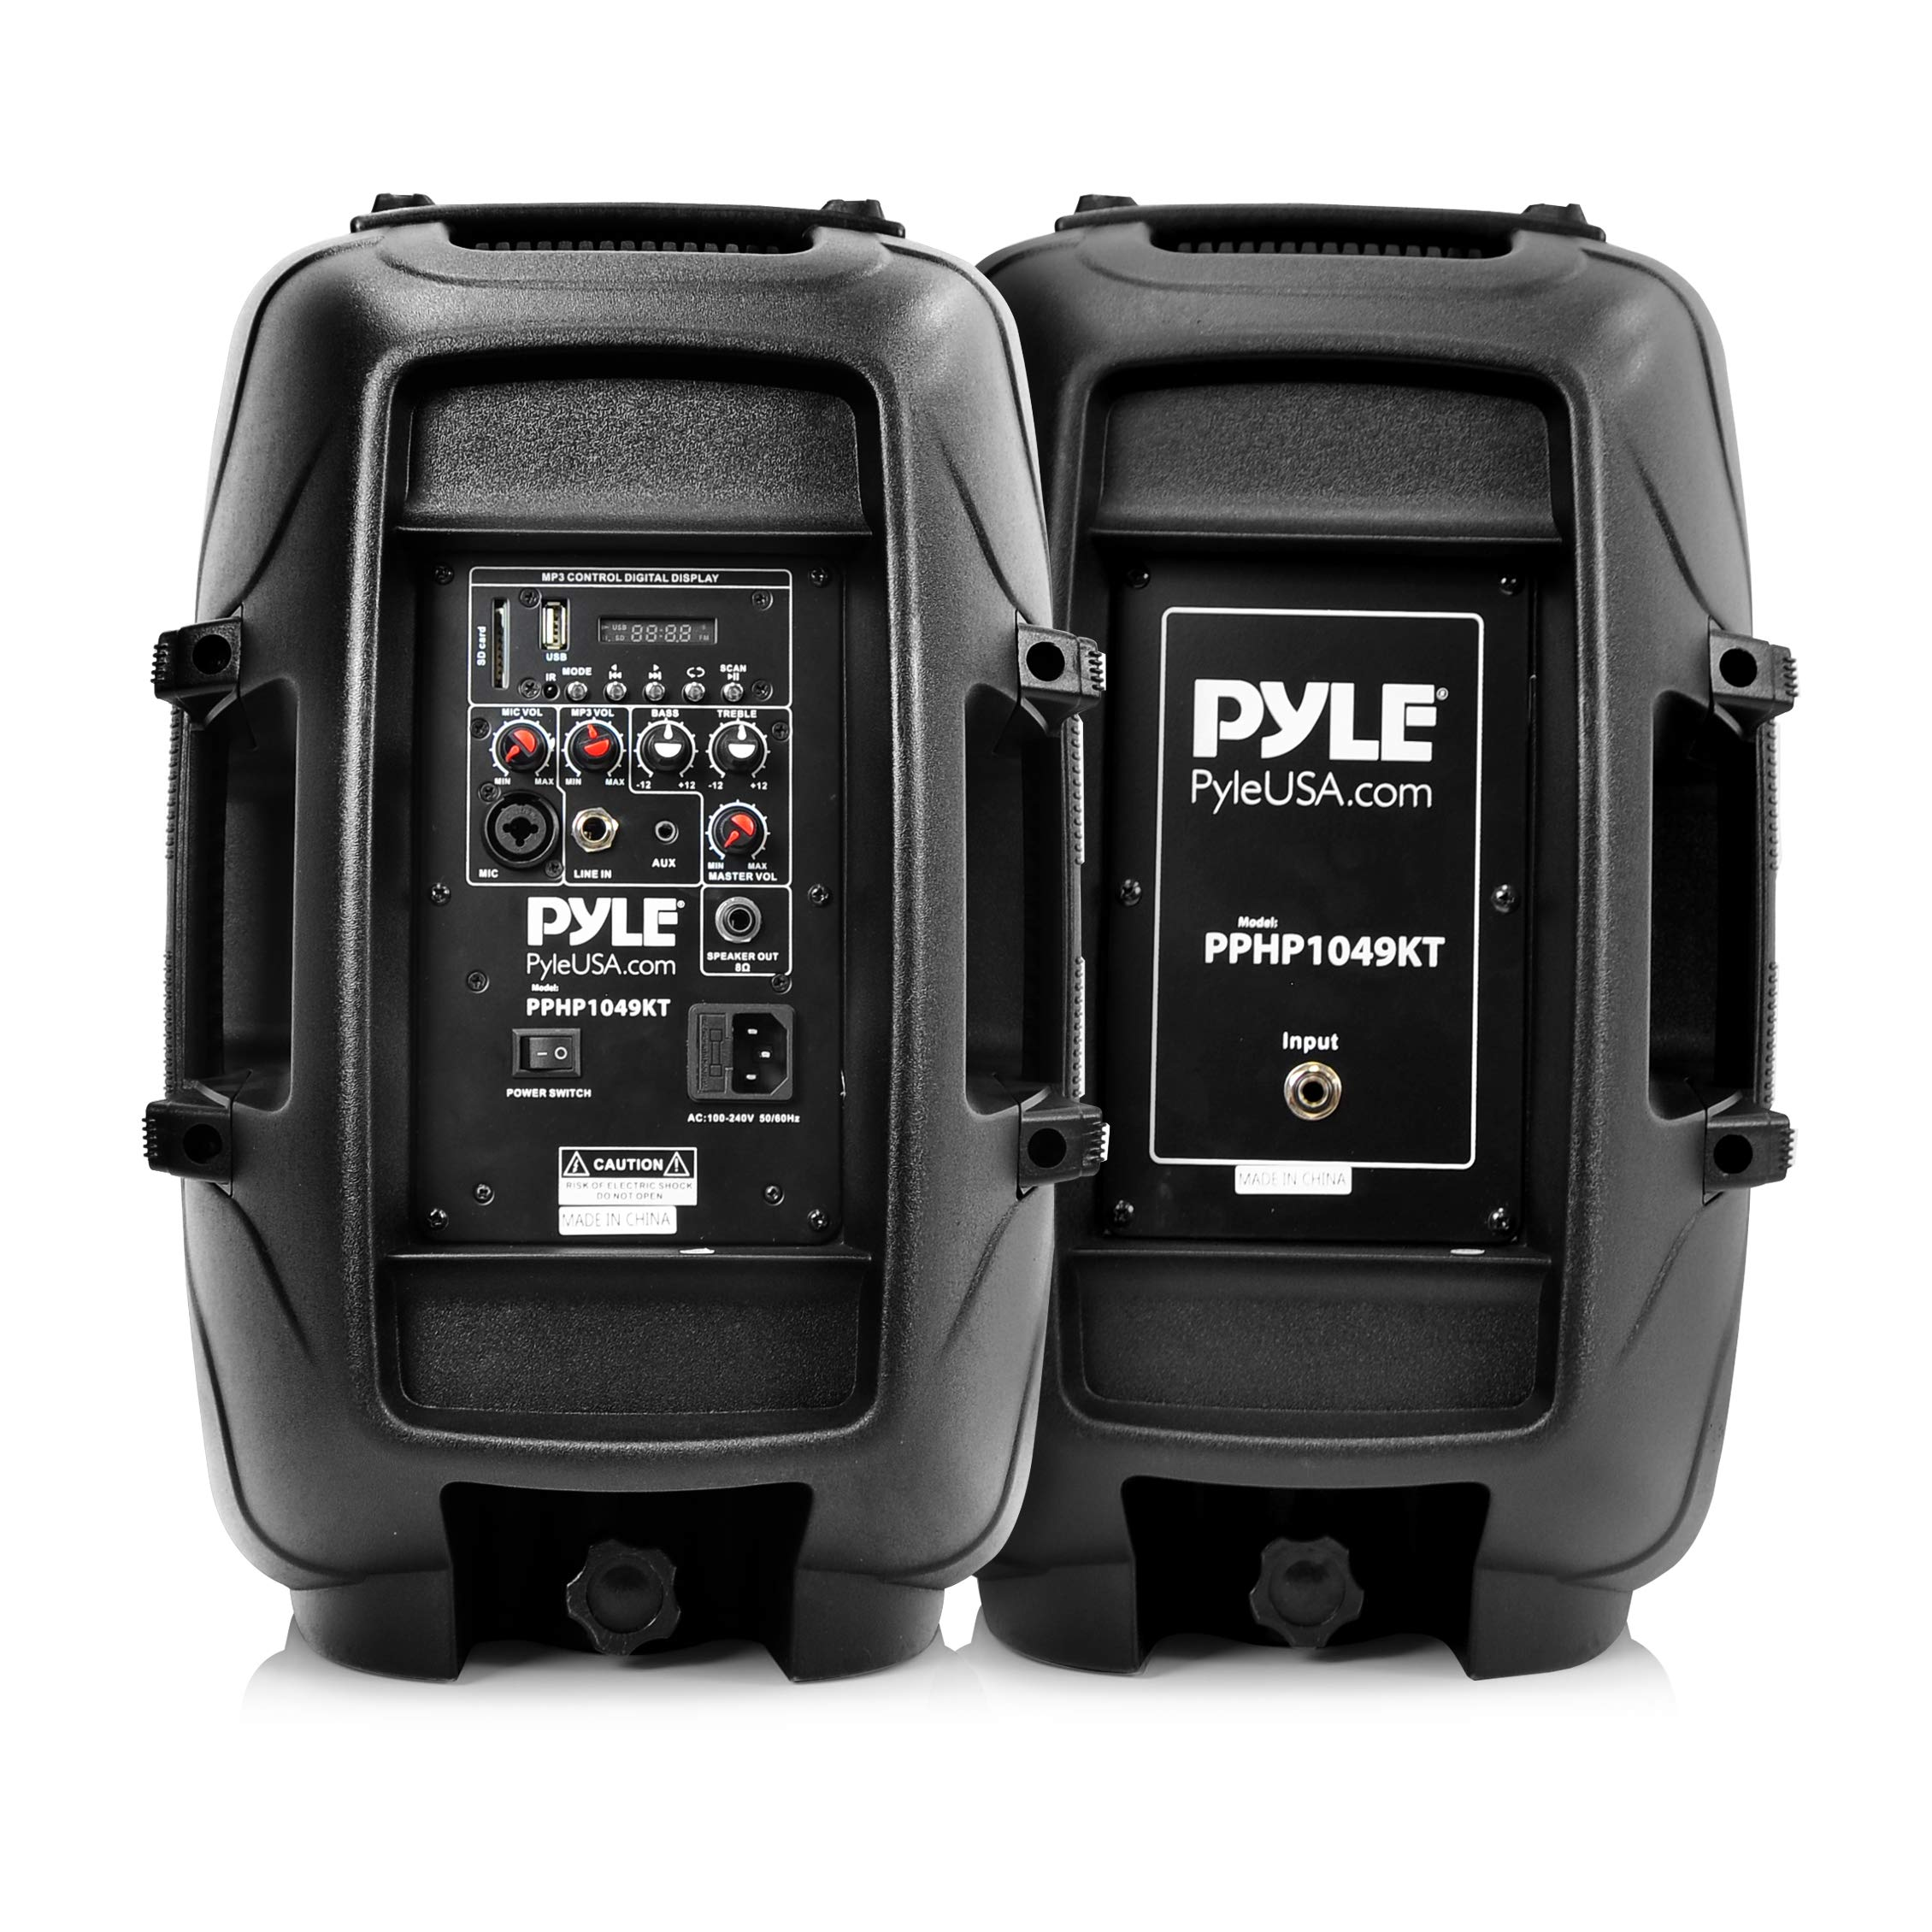 Wireless Portable PA Speaker System - 1000W High Powered Bluetooth Compatible Active + Passive Pair Outdoor Sound Speakers W/USB SD MP3 AUX - 35mm Mount, 2 Stand, Microphone, Remote - Pyle by Pyle (Image #2)